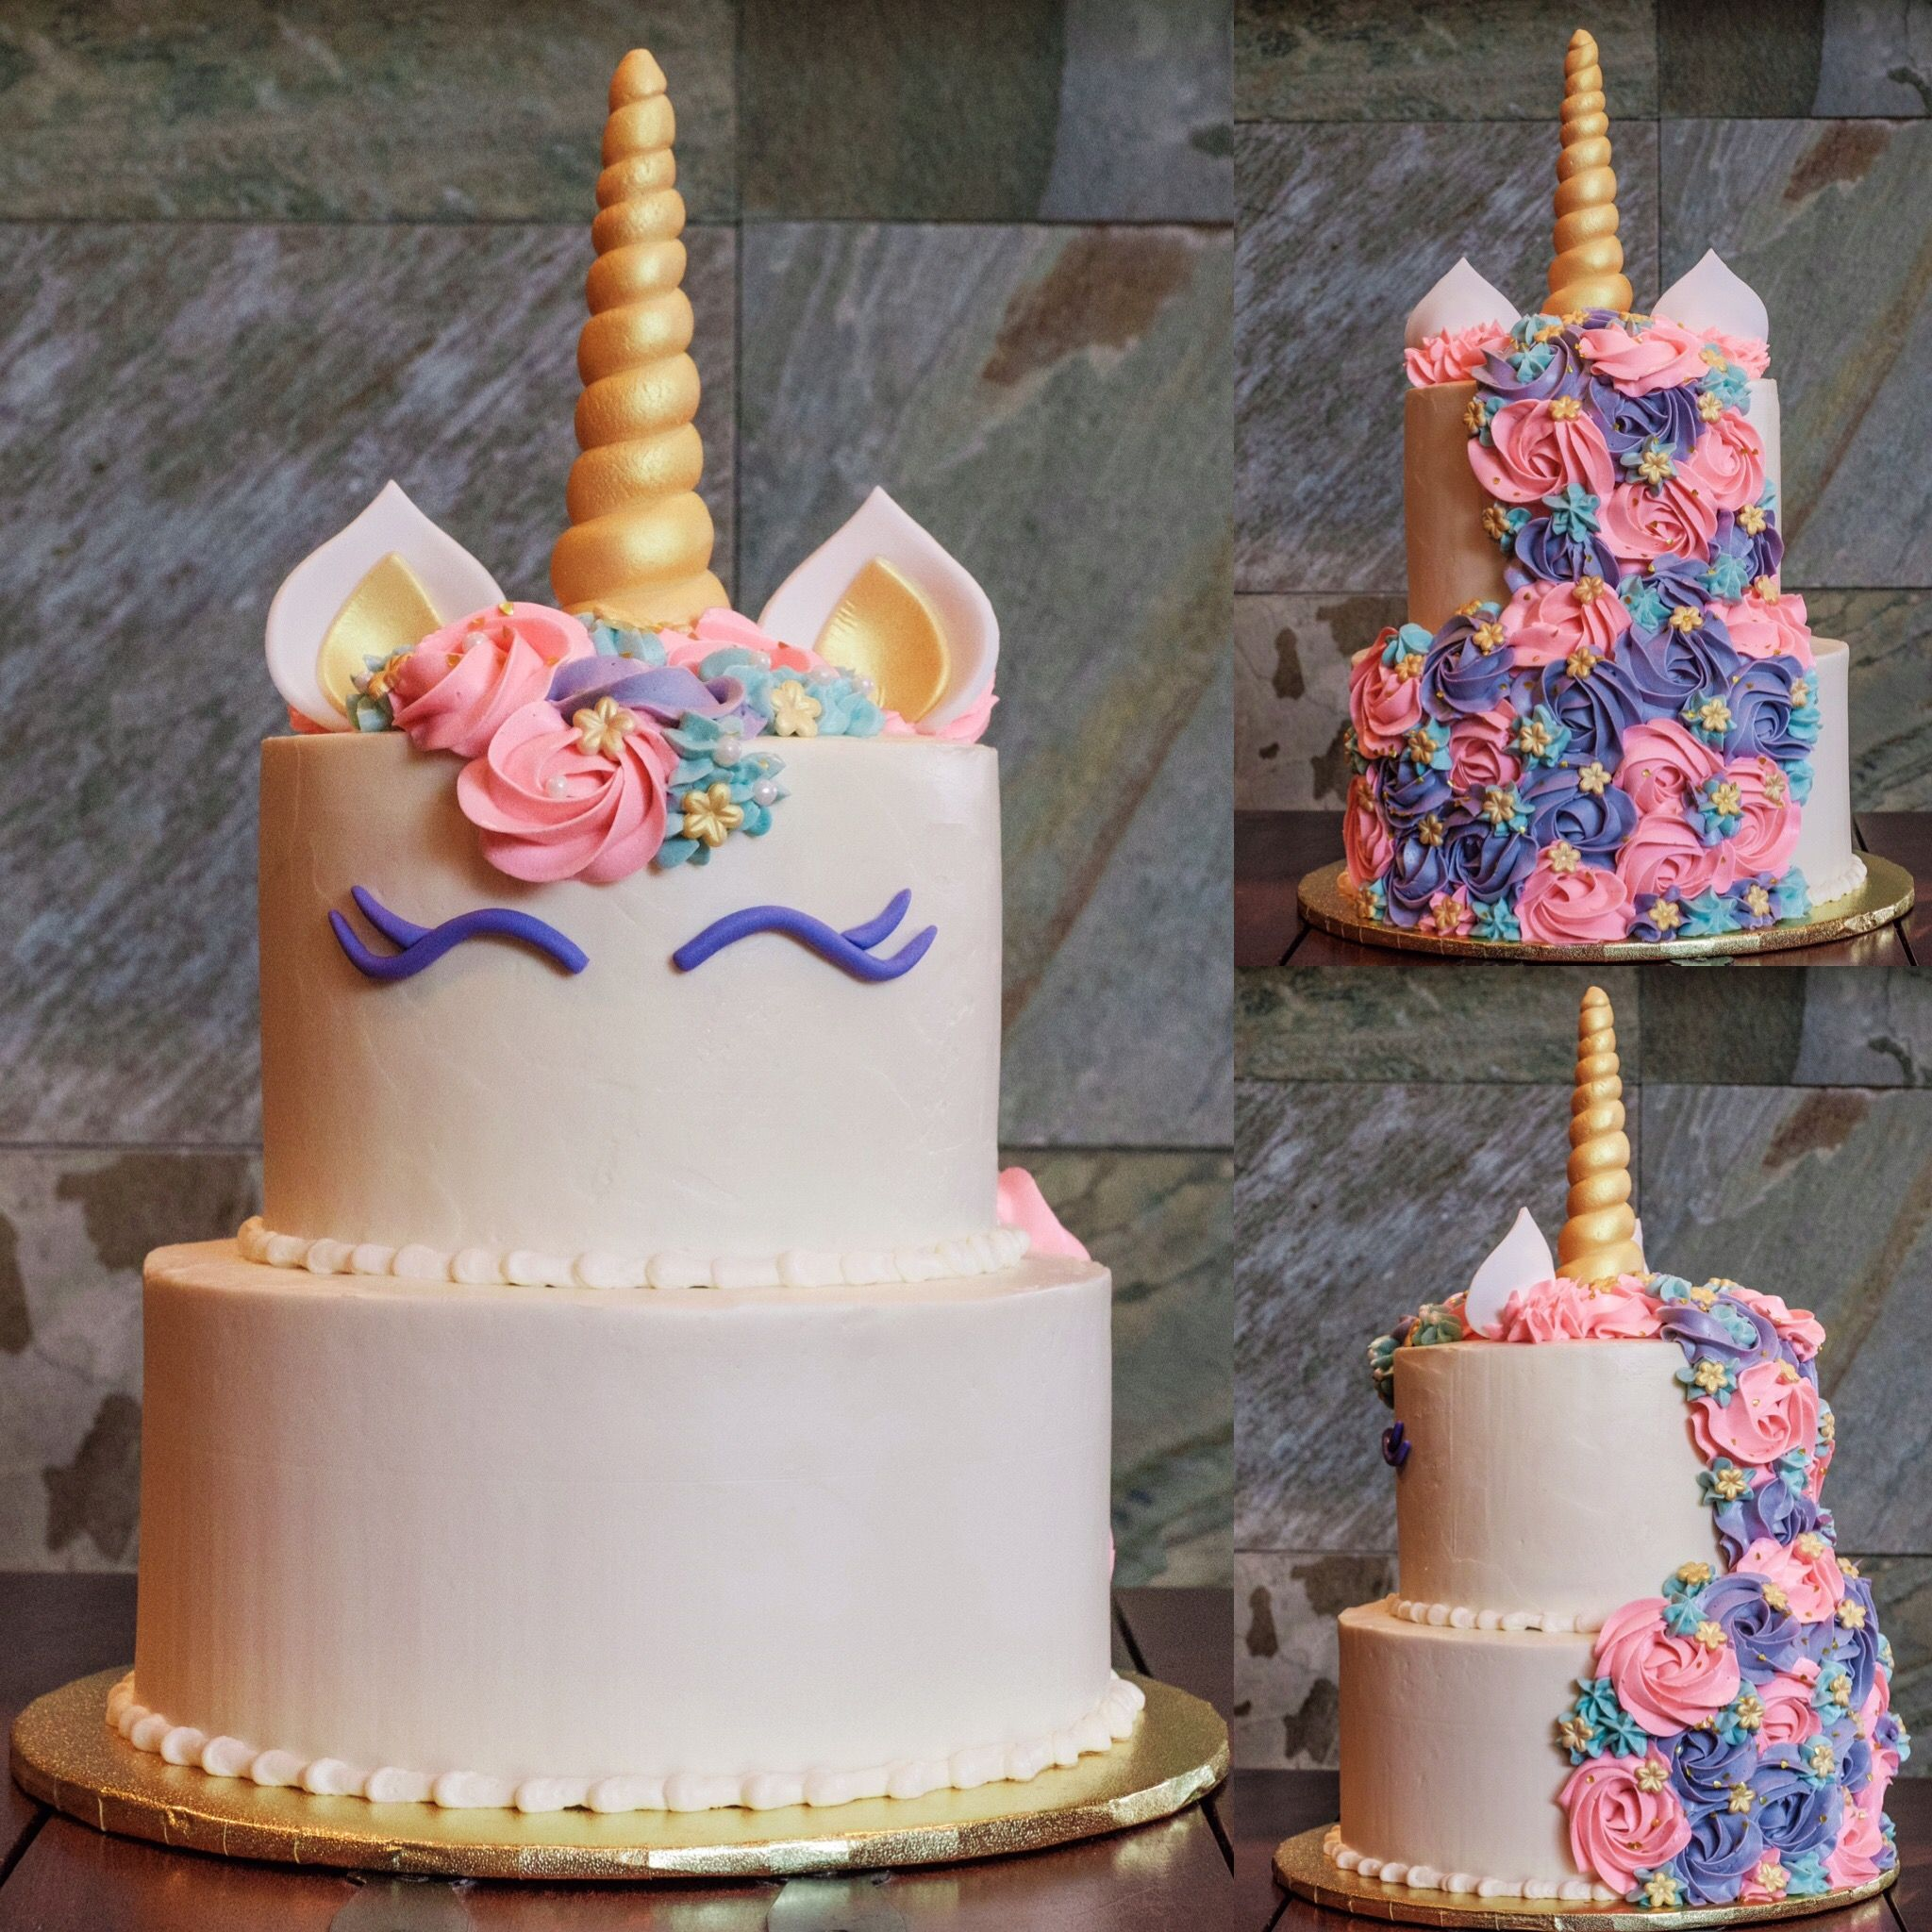 Cake Ideas For One Year Old: A Unicorn Cake For A One Year Old's Birthday, Made By For